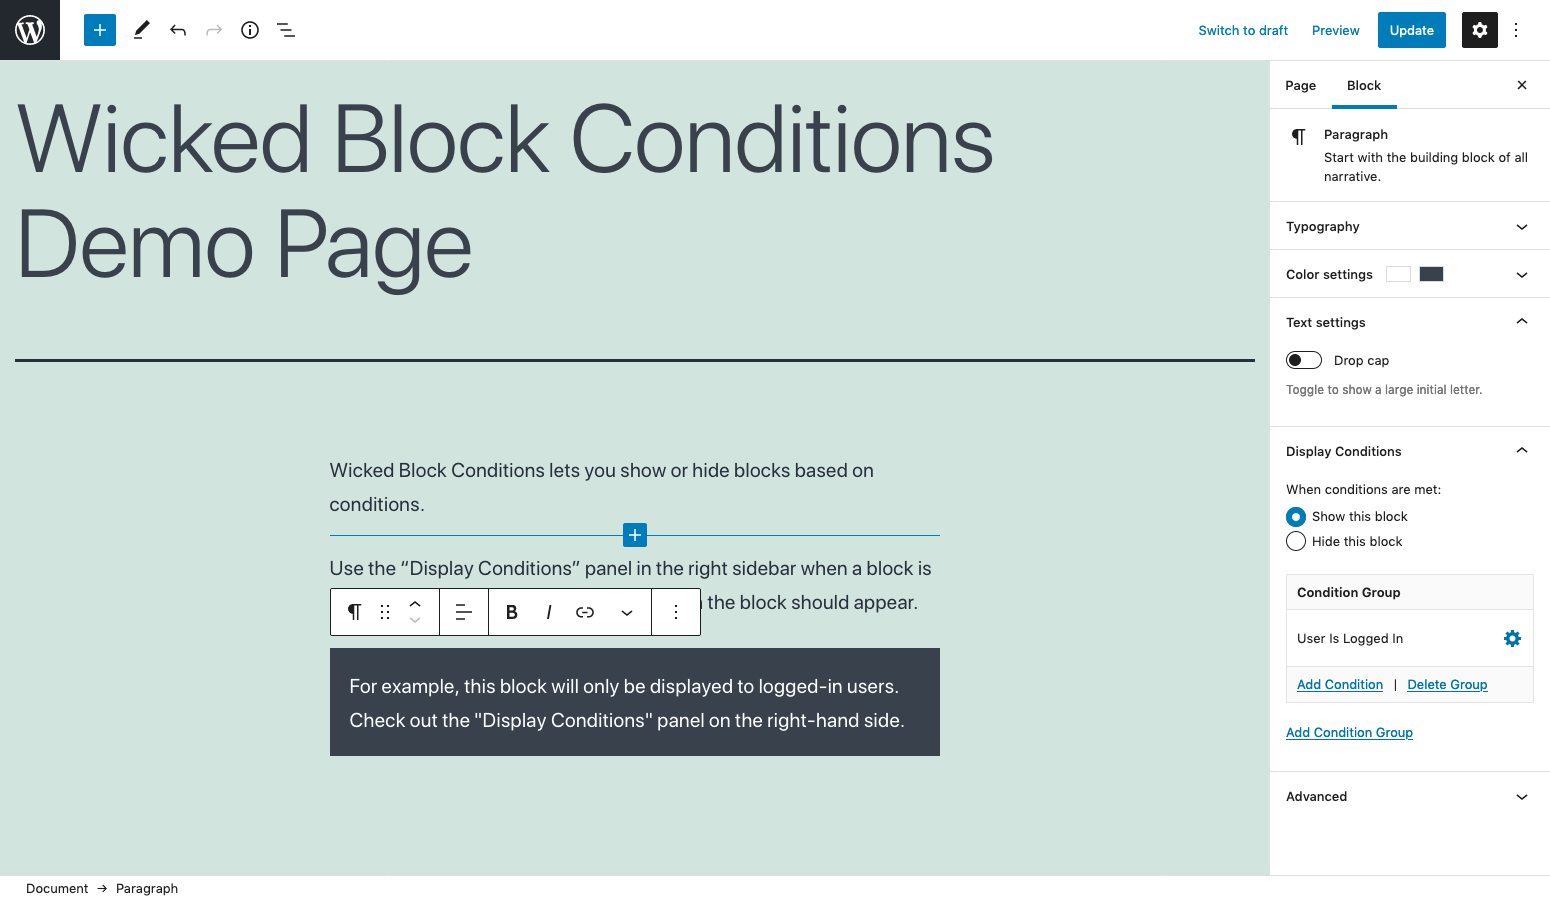 When a block is selected a 'Display Conditions' panel will appear in the right sidebar